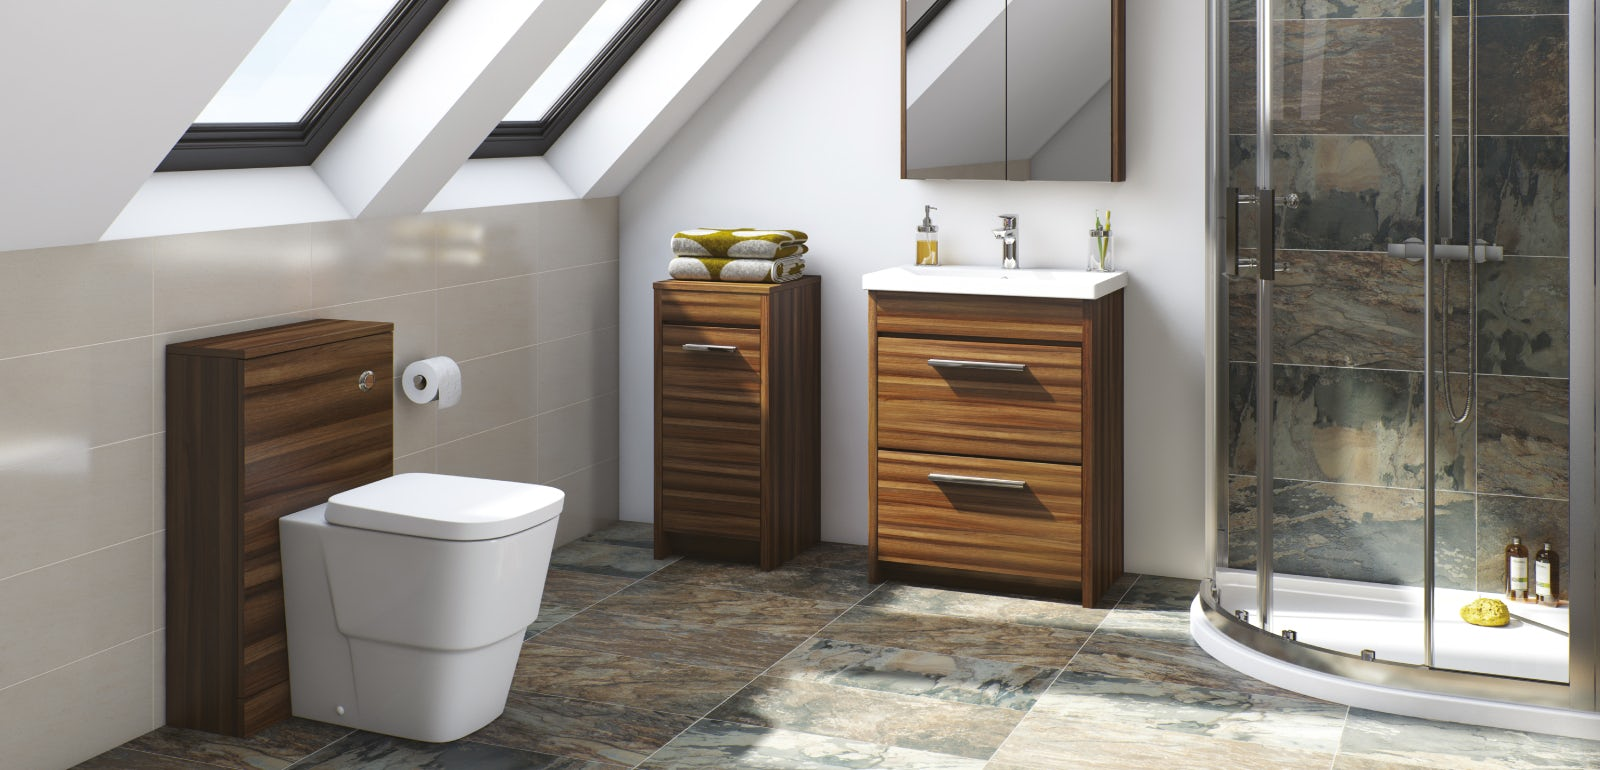 Walnut bathroom furniture uk - Fitted Bathroom Furniture